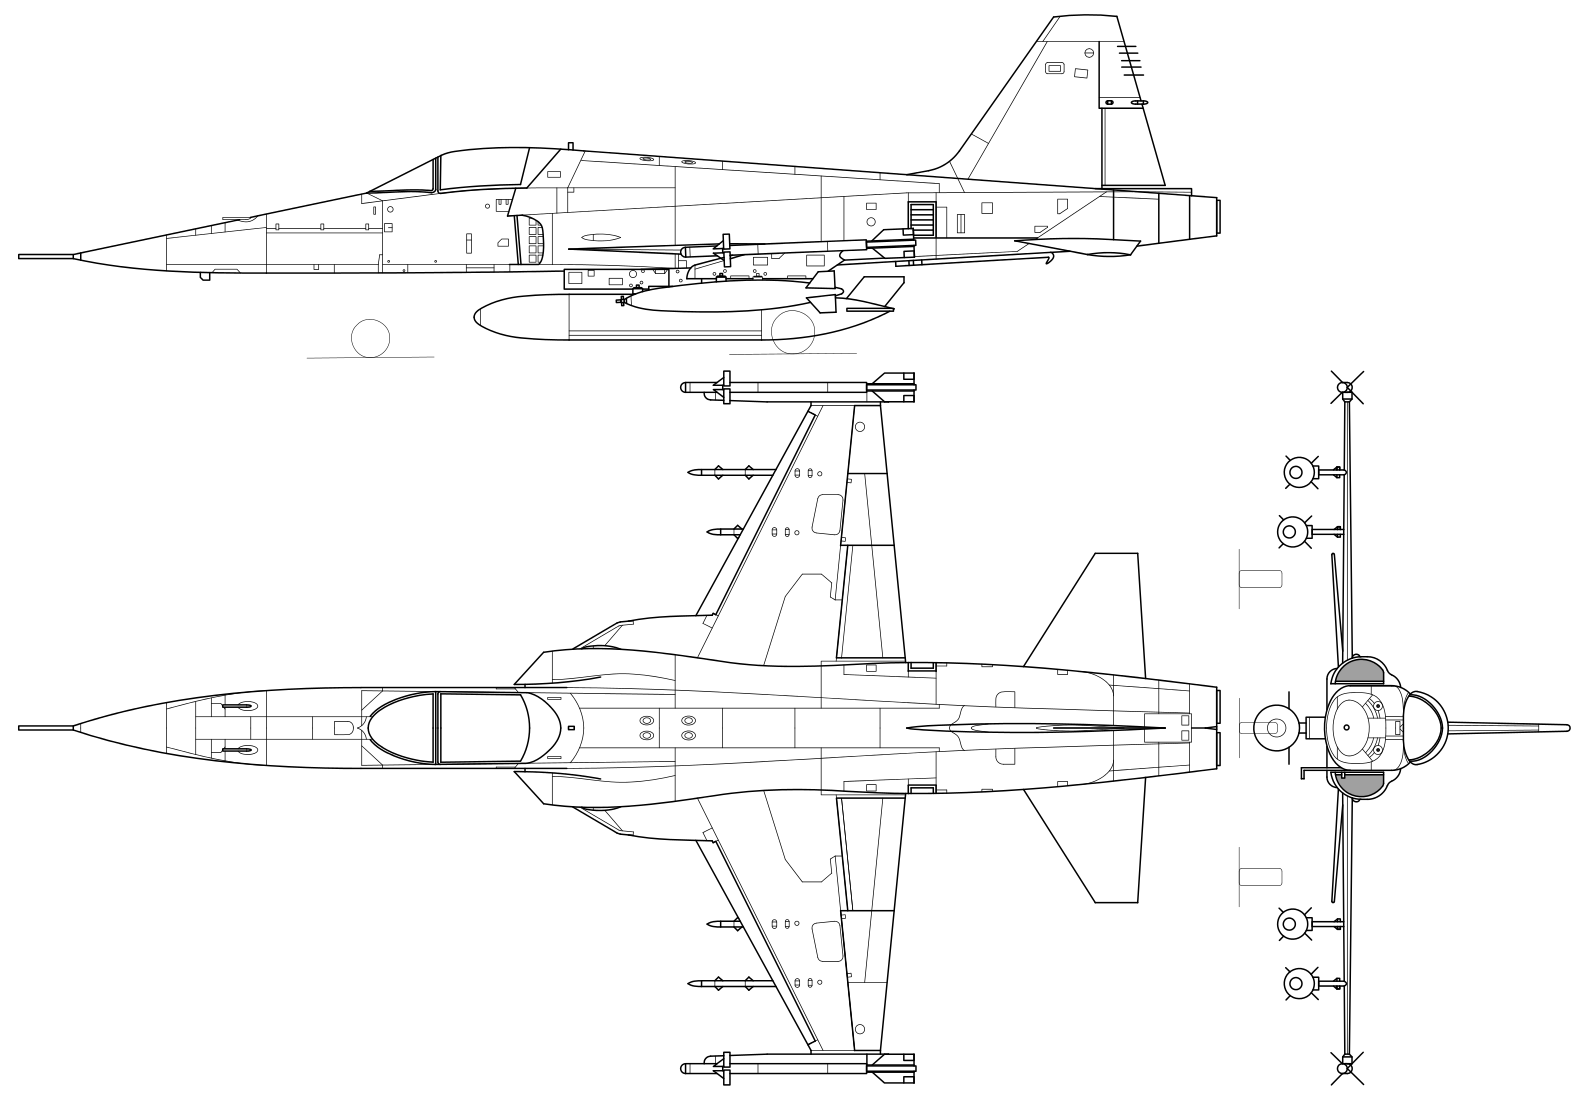 An orthographically projected diagram of the F-5E Tiger II